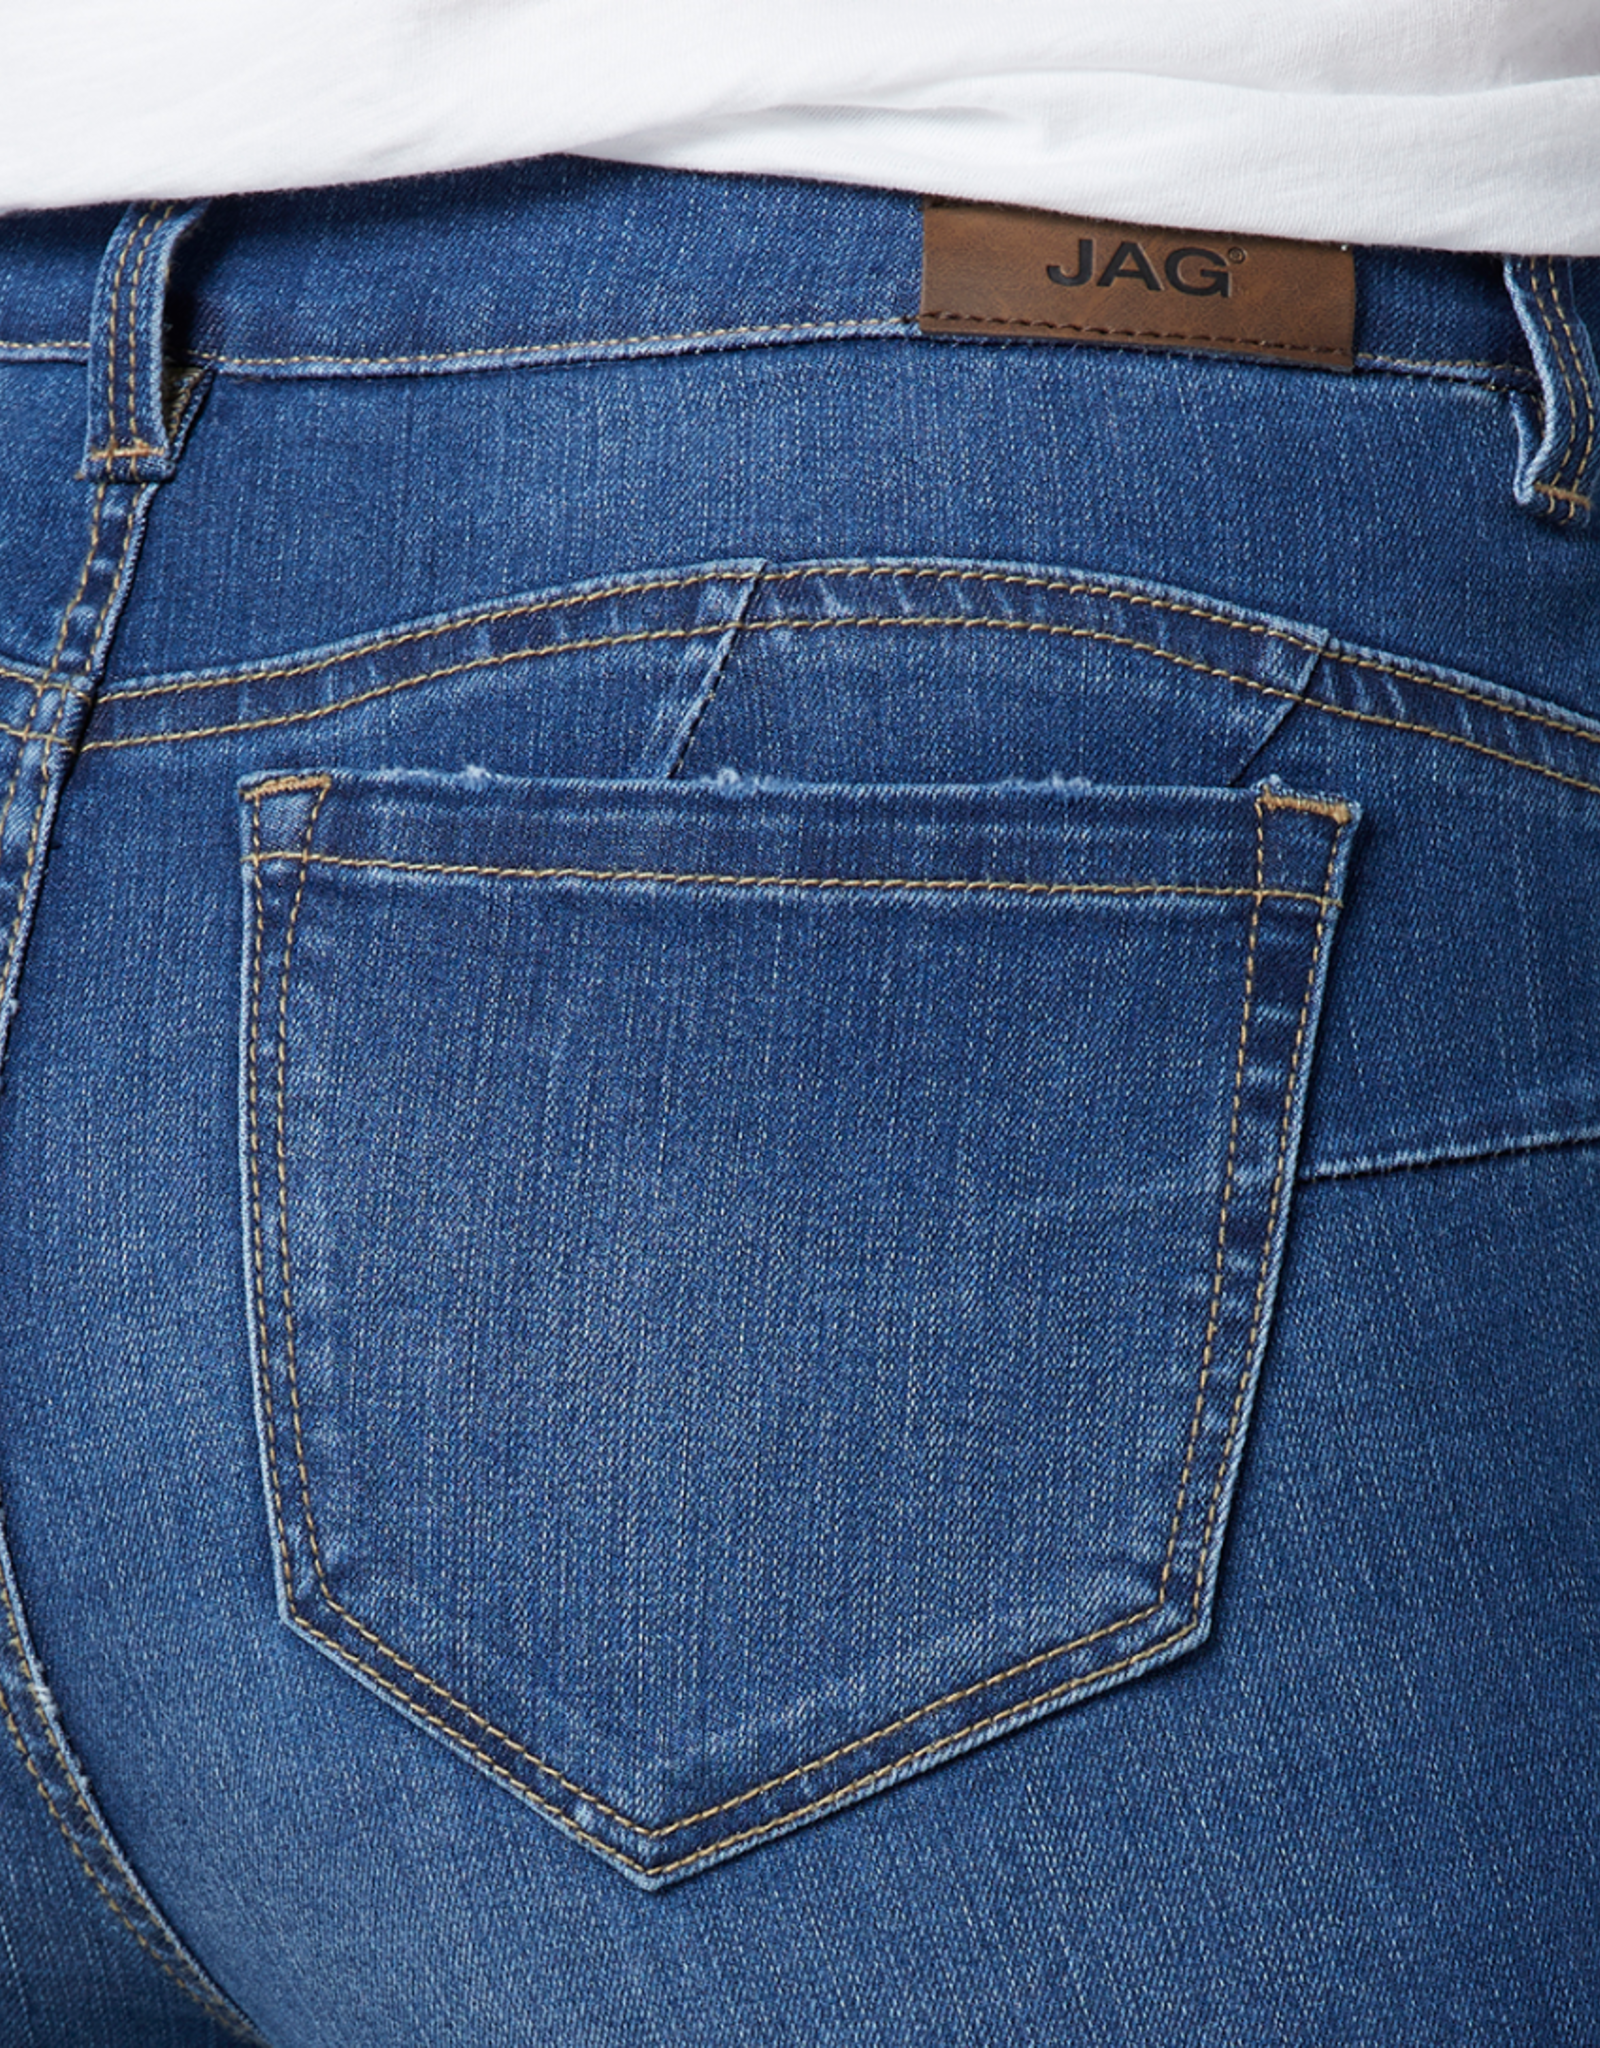 JAG High Rise Flat Front Skinny Jean